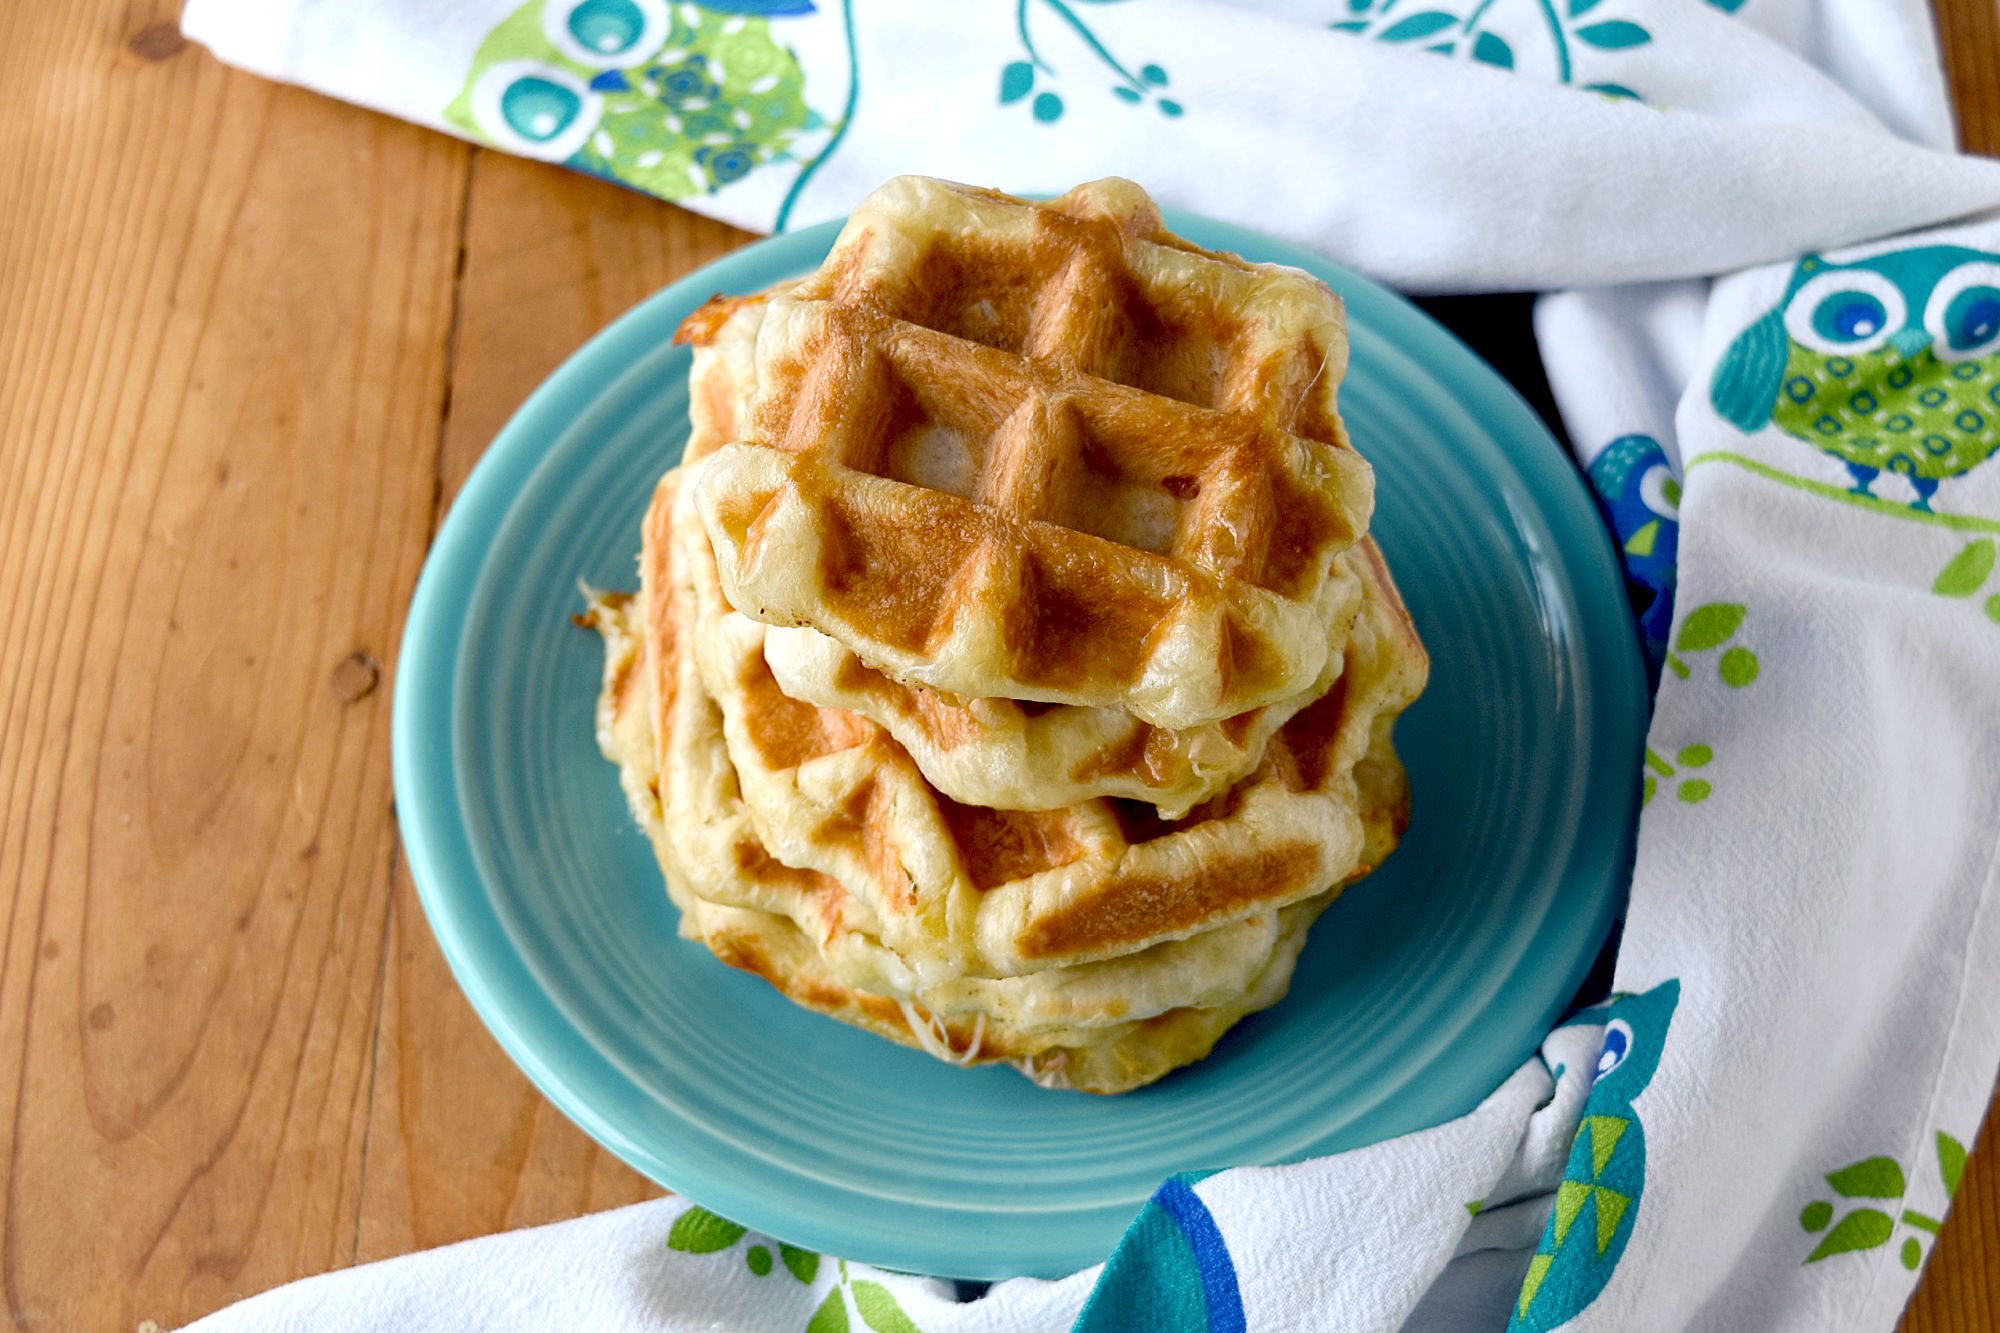 Cheesy Garlic Butter Waffles have only three ingredients. They're easy to make and taste so delicious! #OurFamilyTable